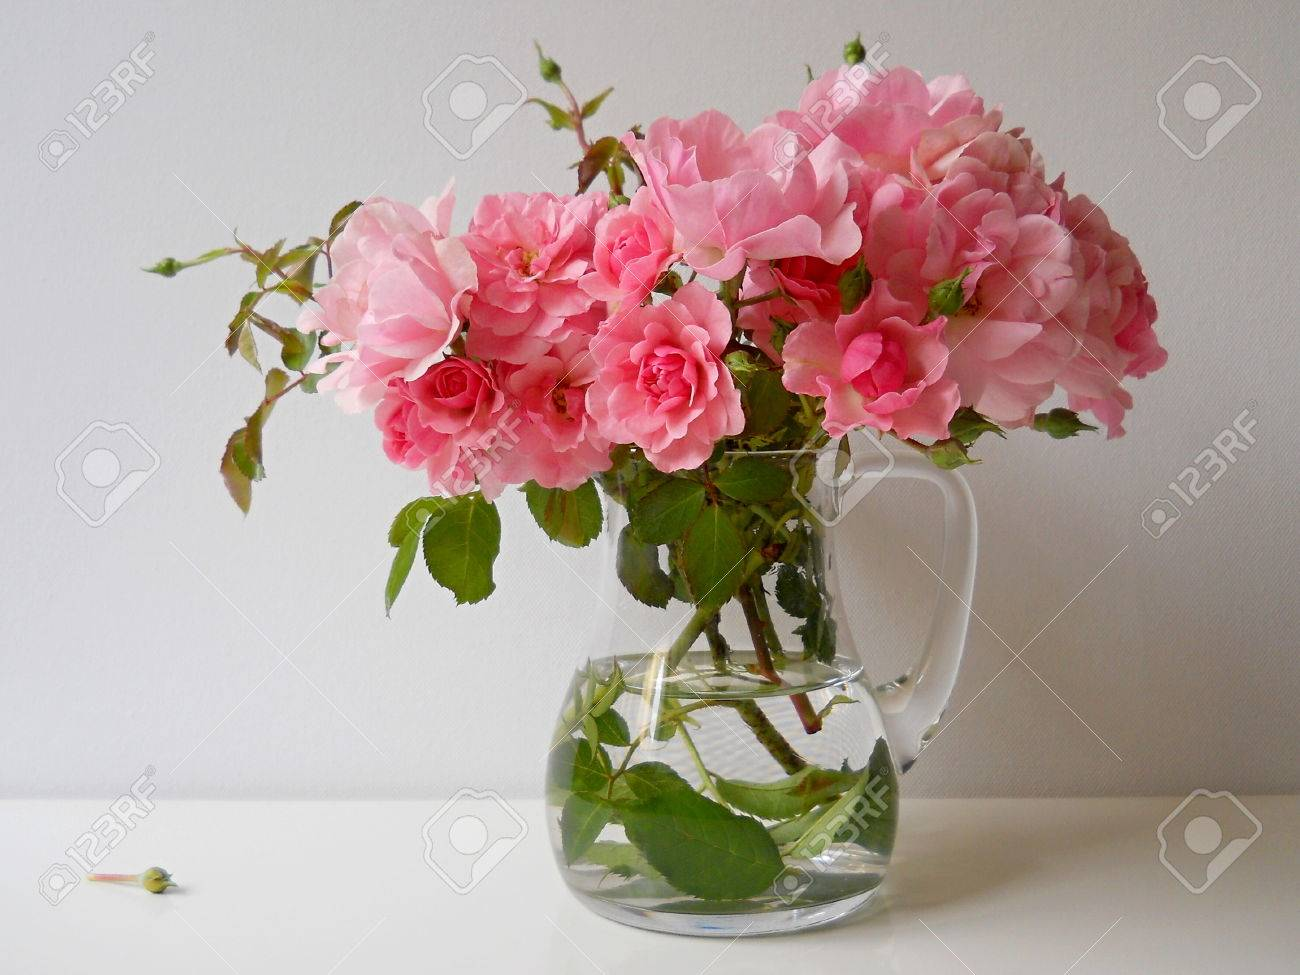 Bouquet Of Pink Roses In A Glass Vase Floral Still Life Stock